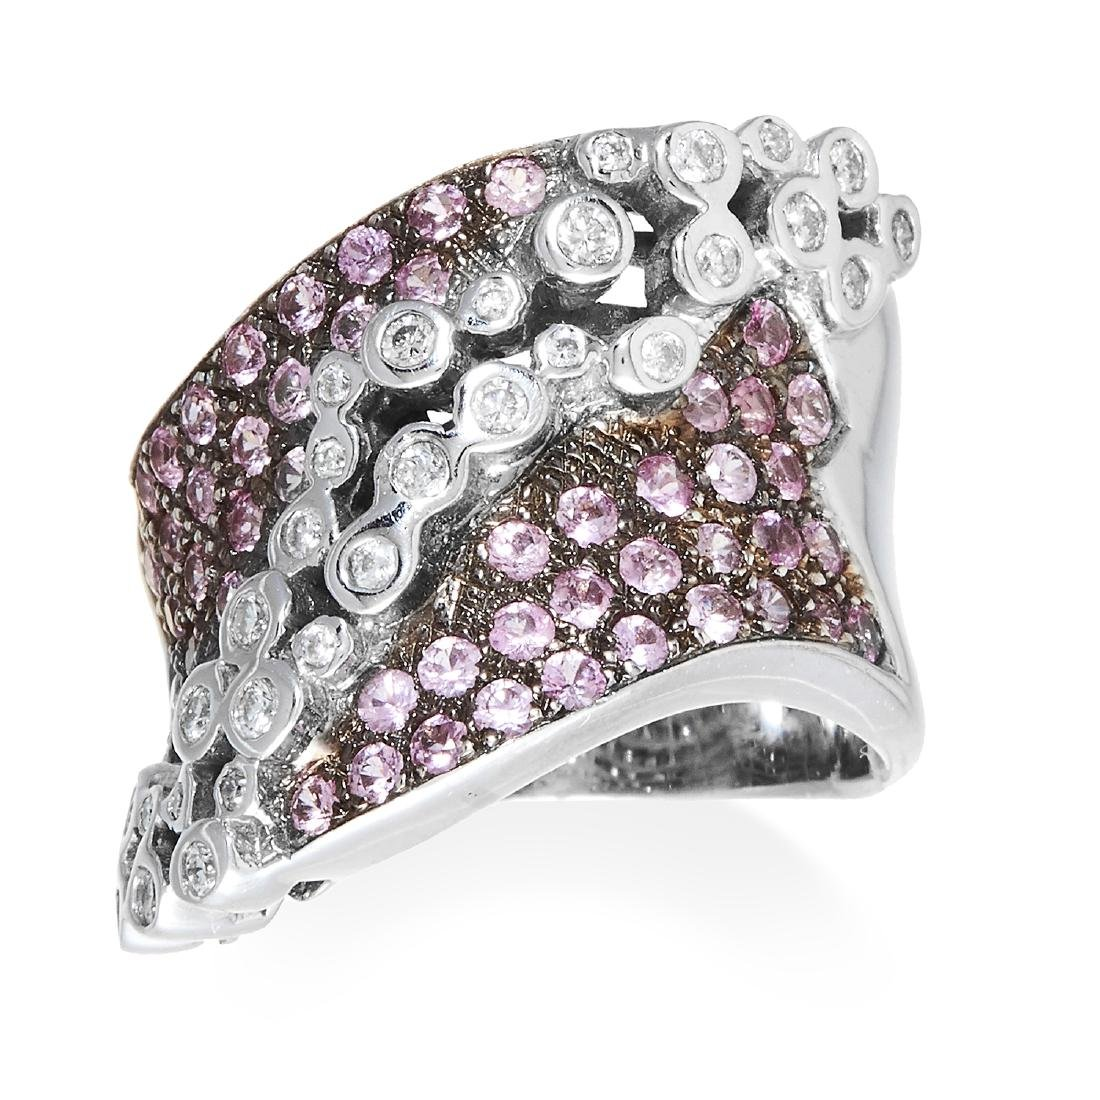 A TOPAZ AND DIAMOND DRESS RING in 18ct white gold,